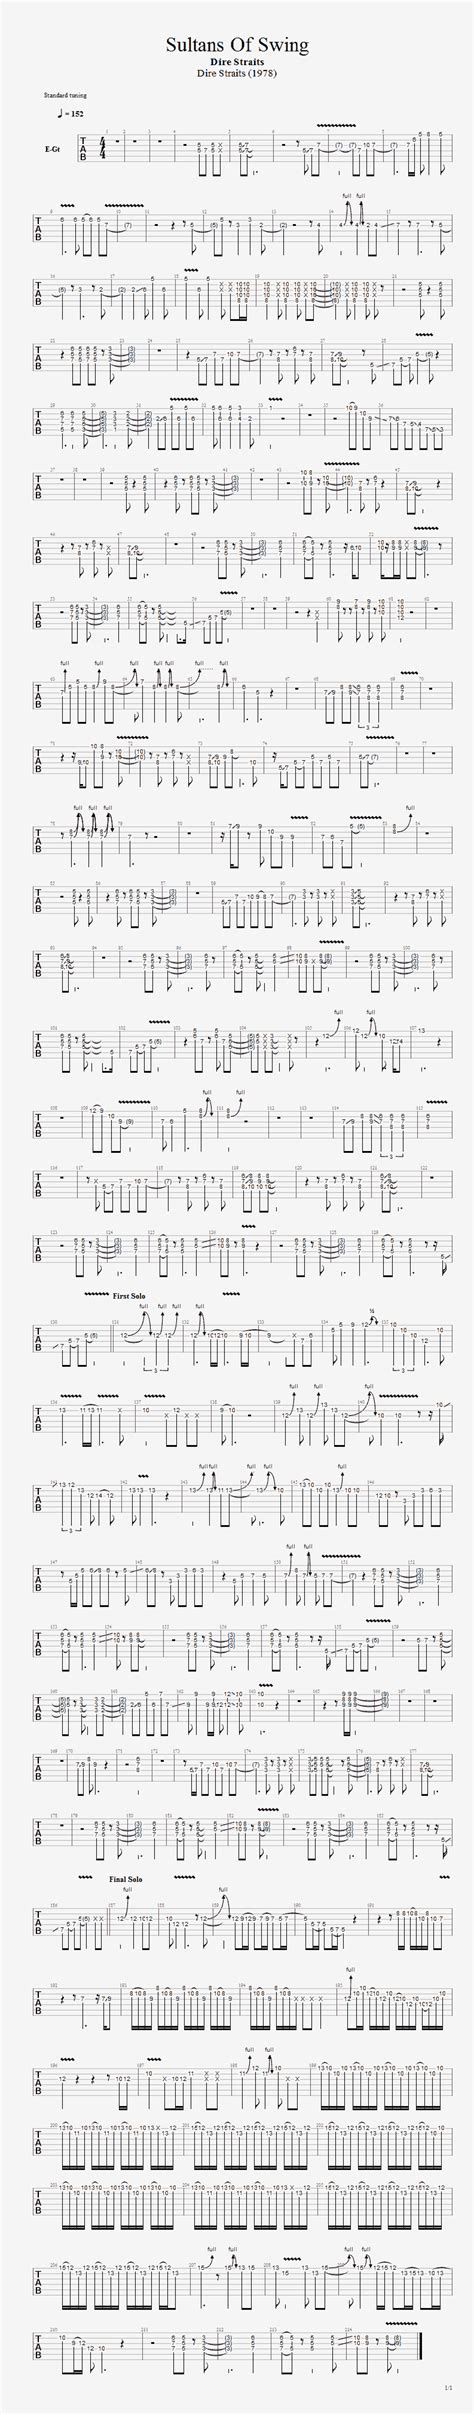 sultans of swing fingerstyle sultans of swing guitar tab guitarnick